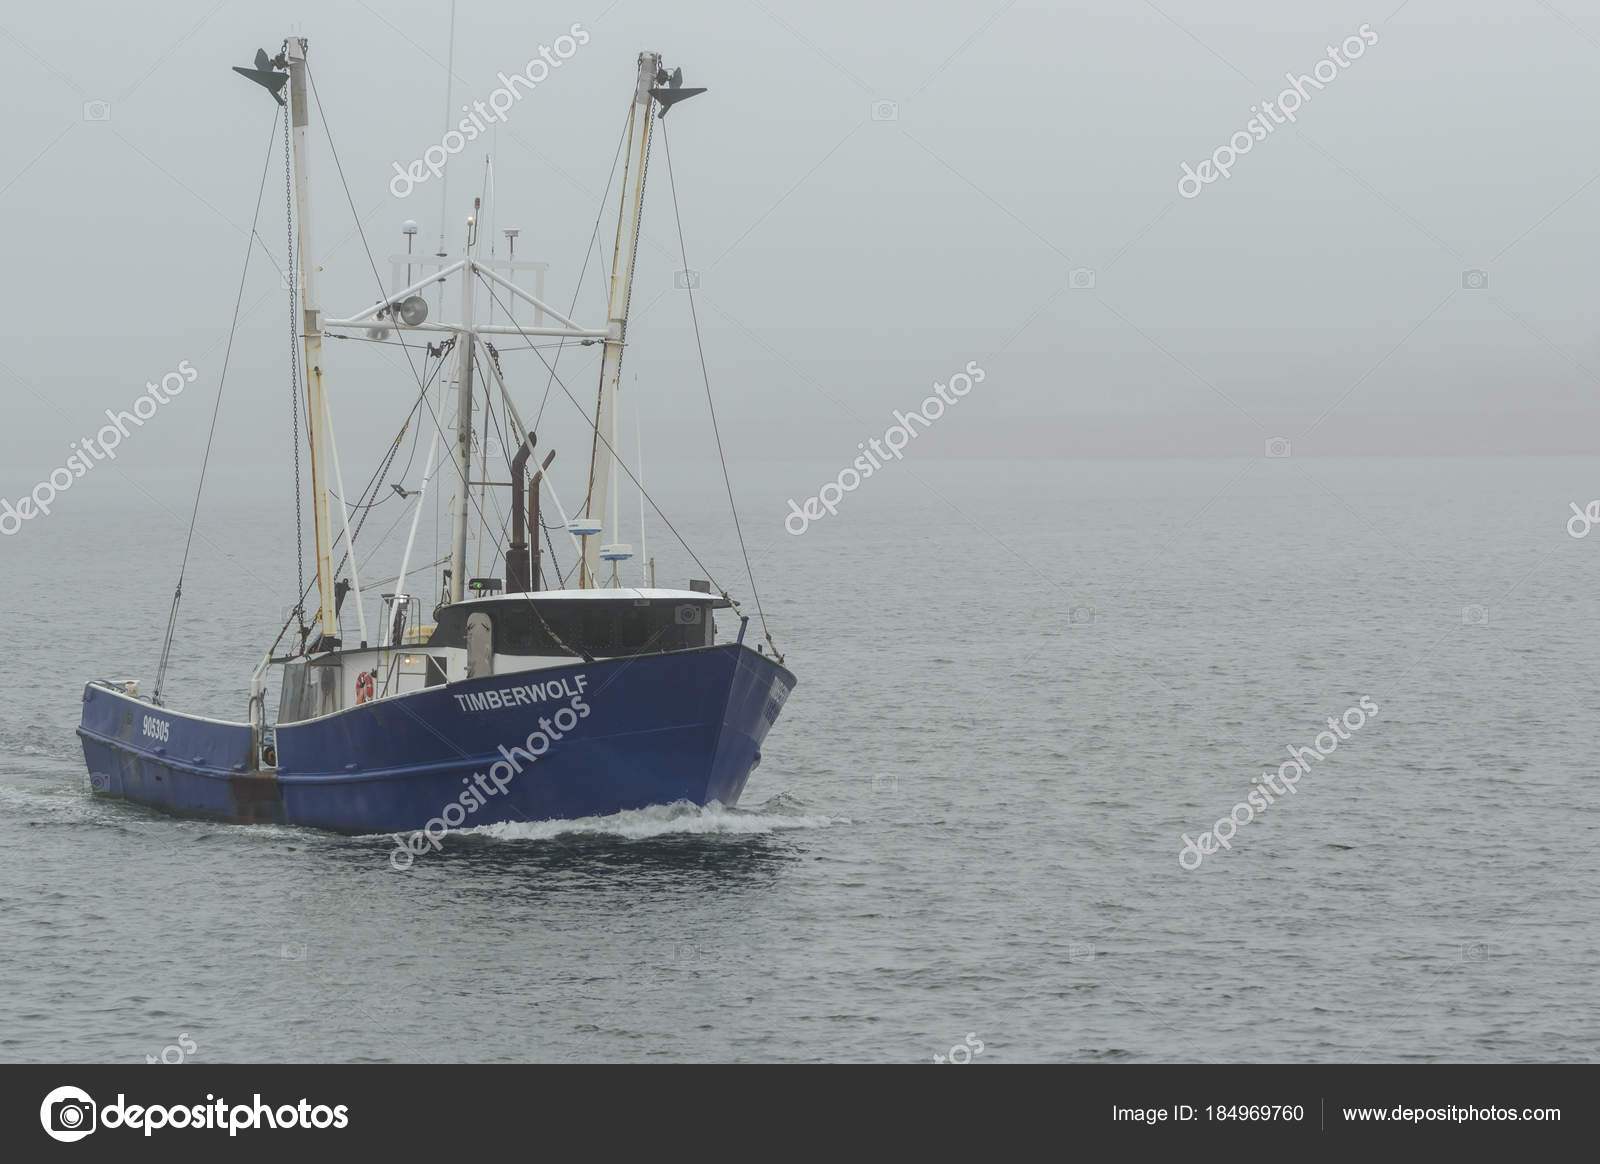 Commercial fishing boat timberwolf on foggy day stock for Mass commercial fishing license